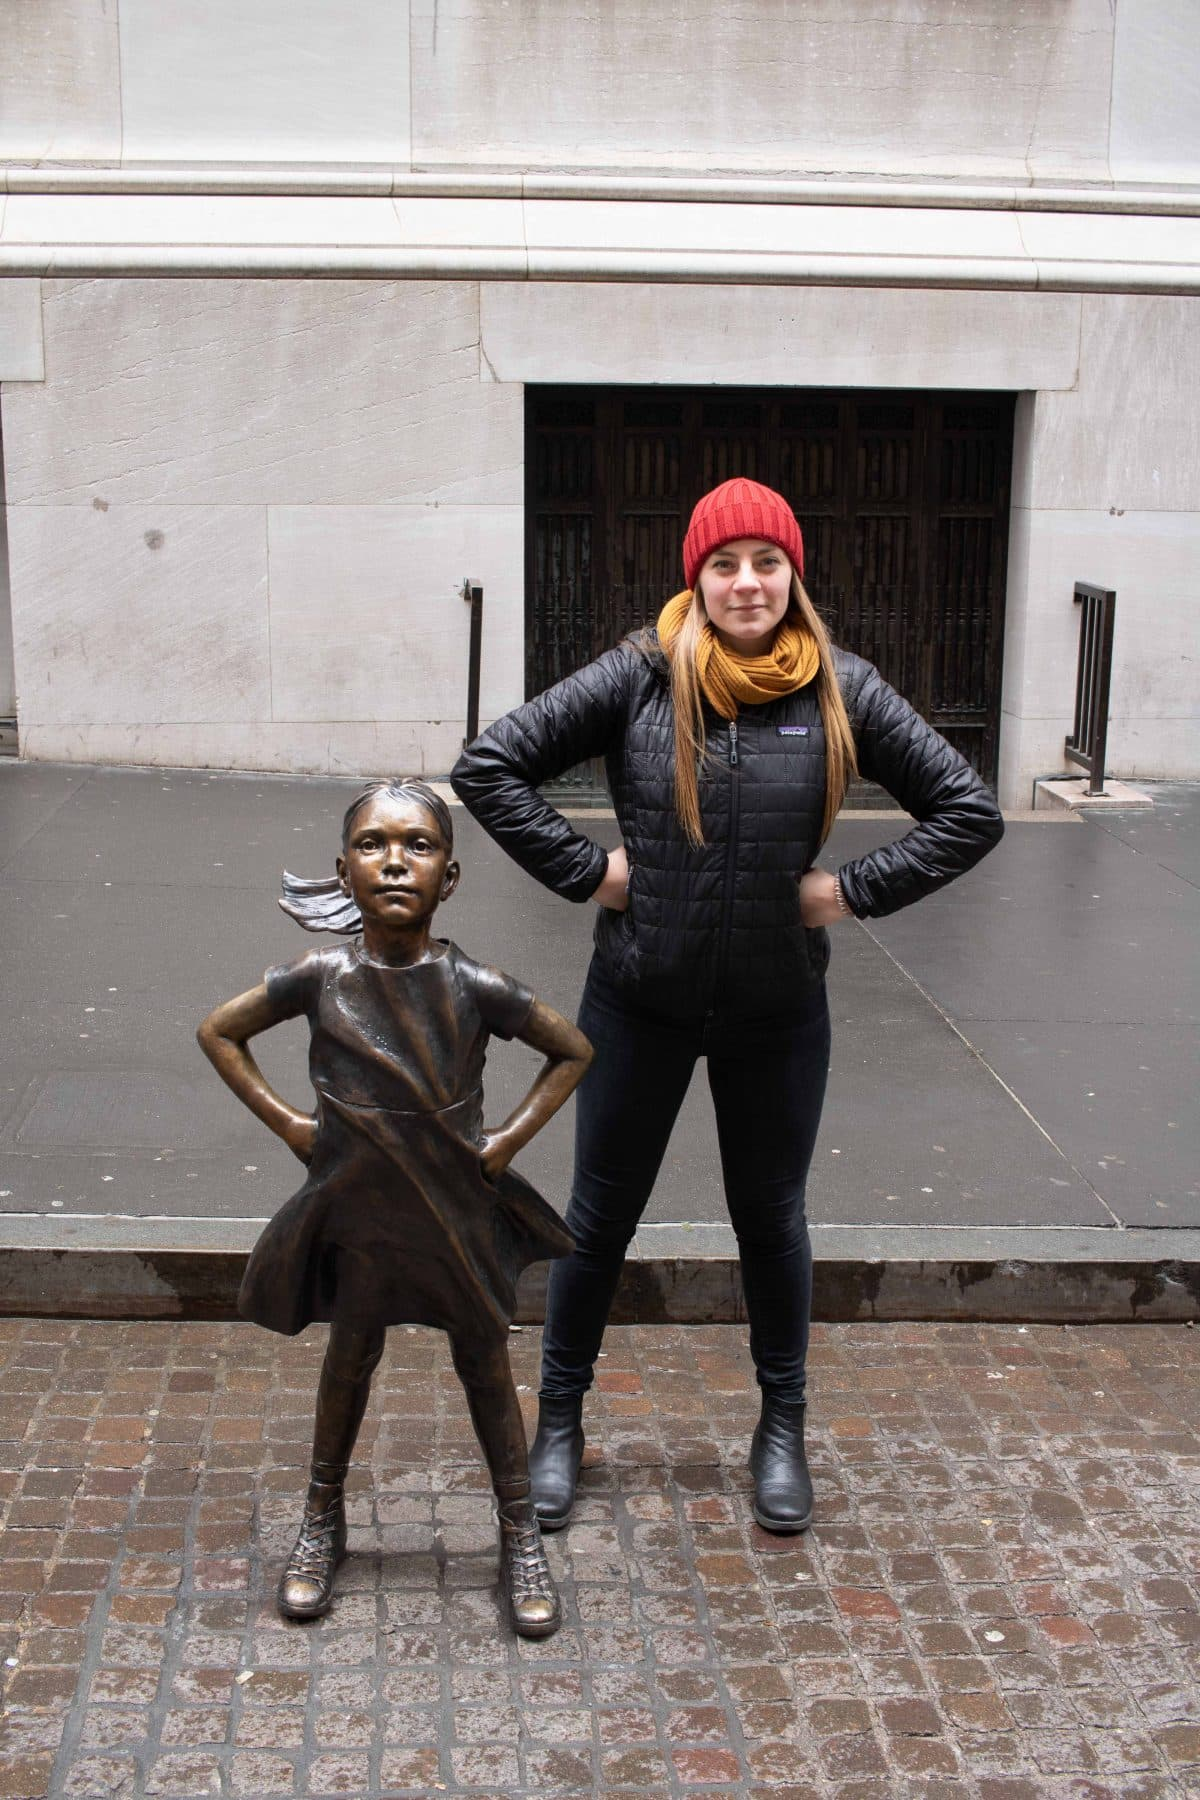 5 Tage New York Insider Tipp: The Fearless Girl